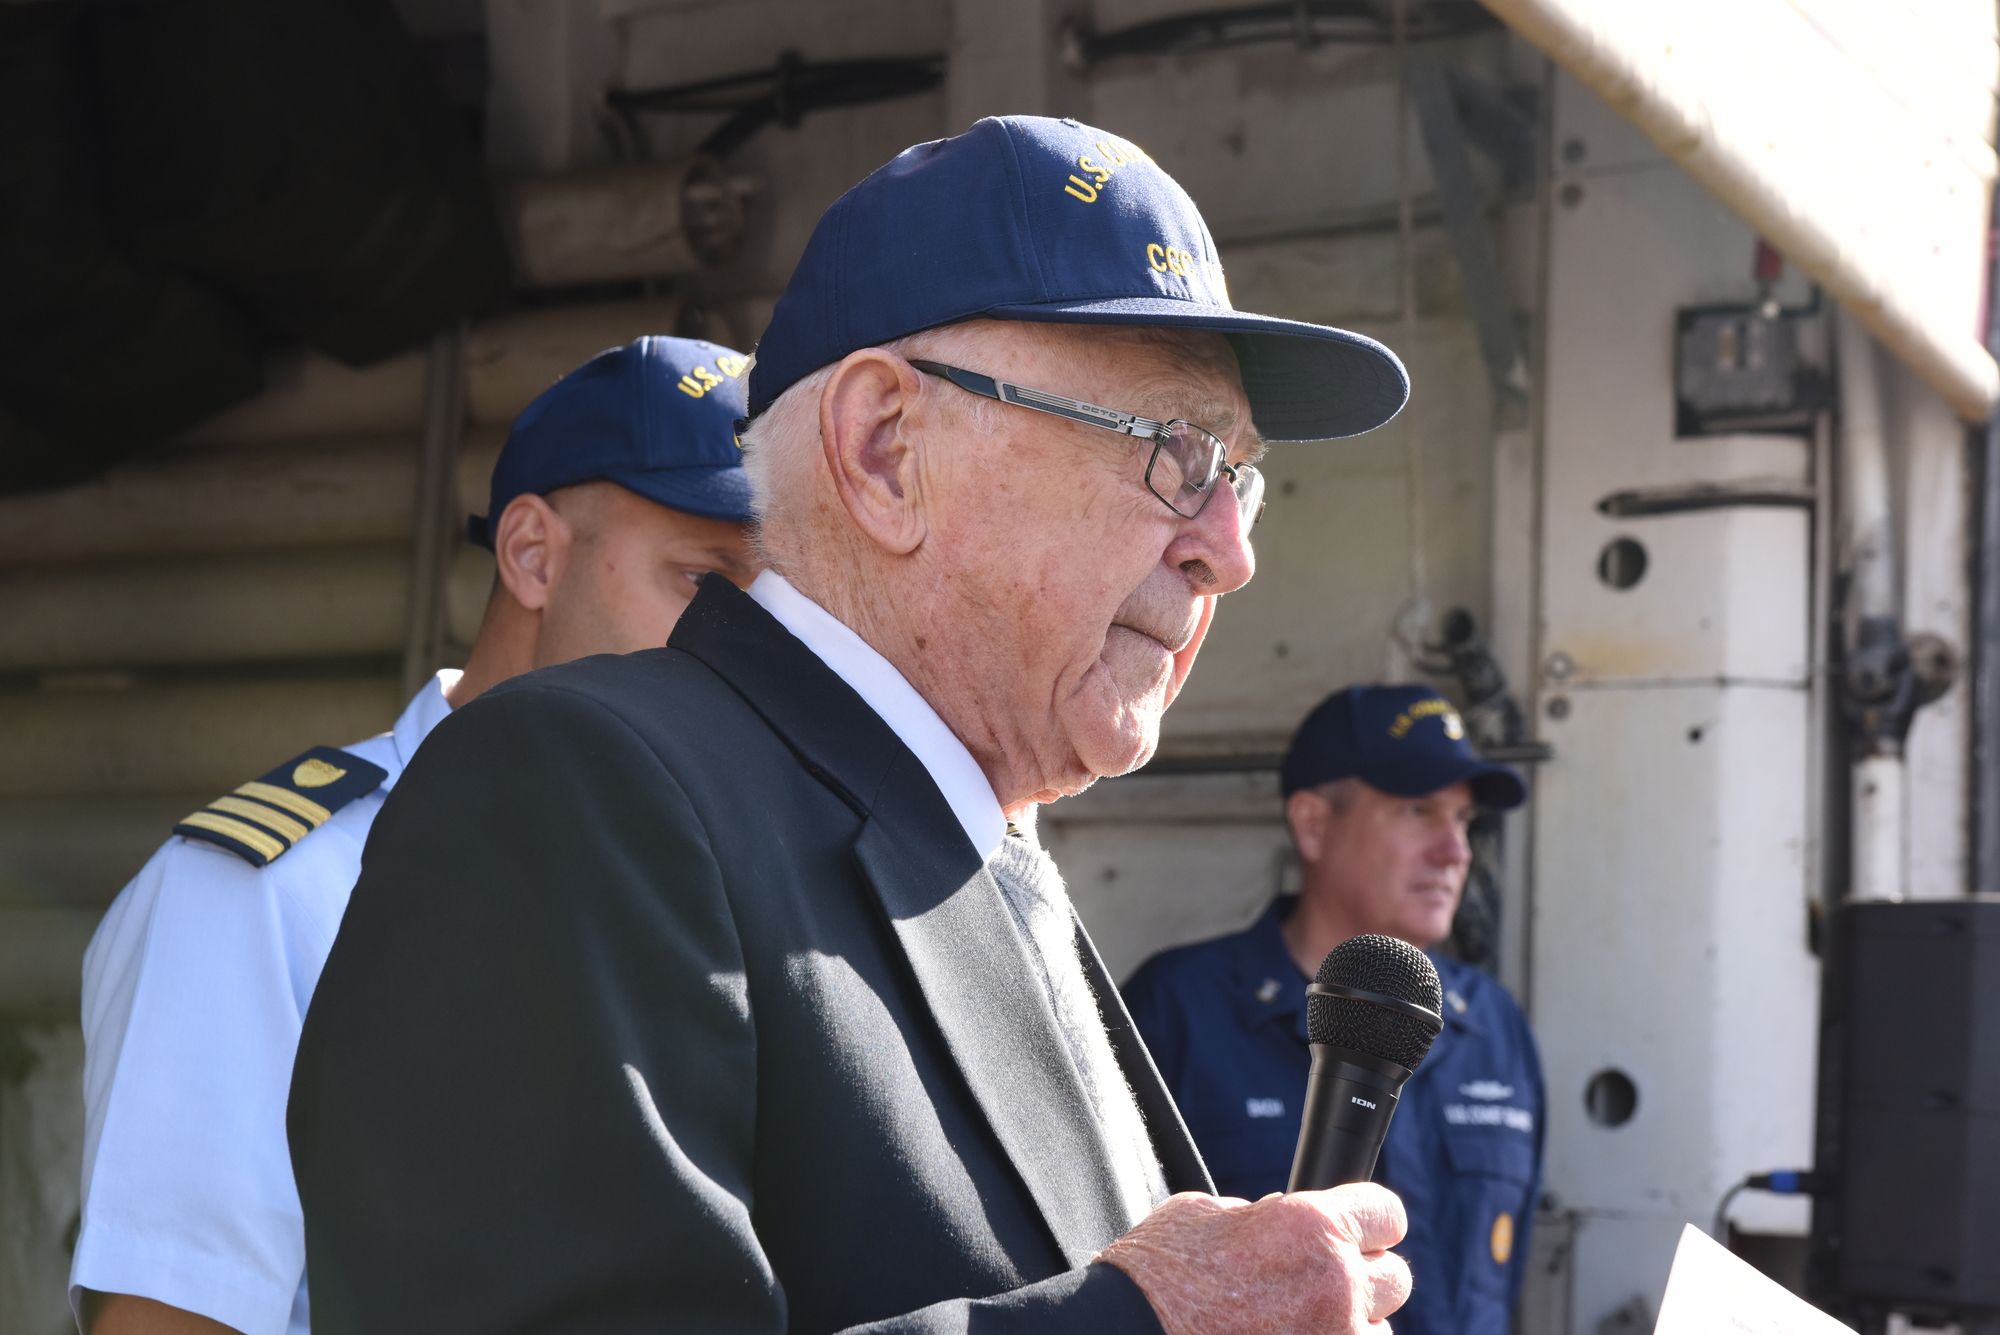 World War 2 Coast Guard veteran gifts the Coast Guard with a historical flag